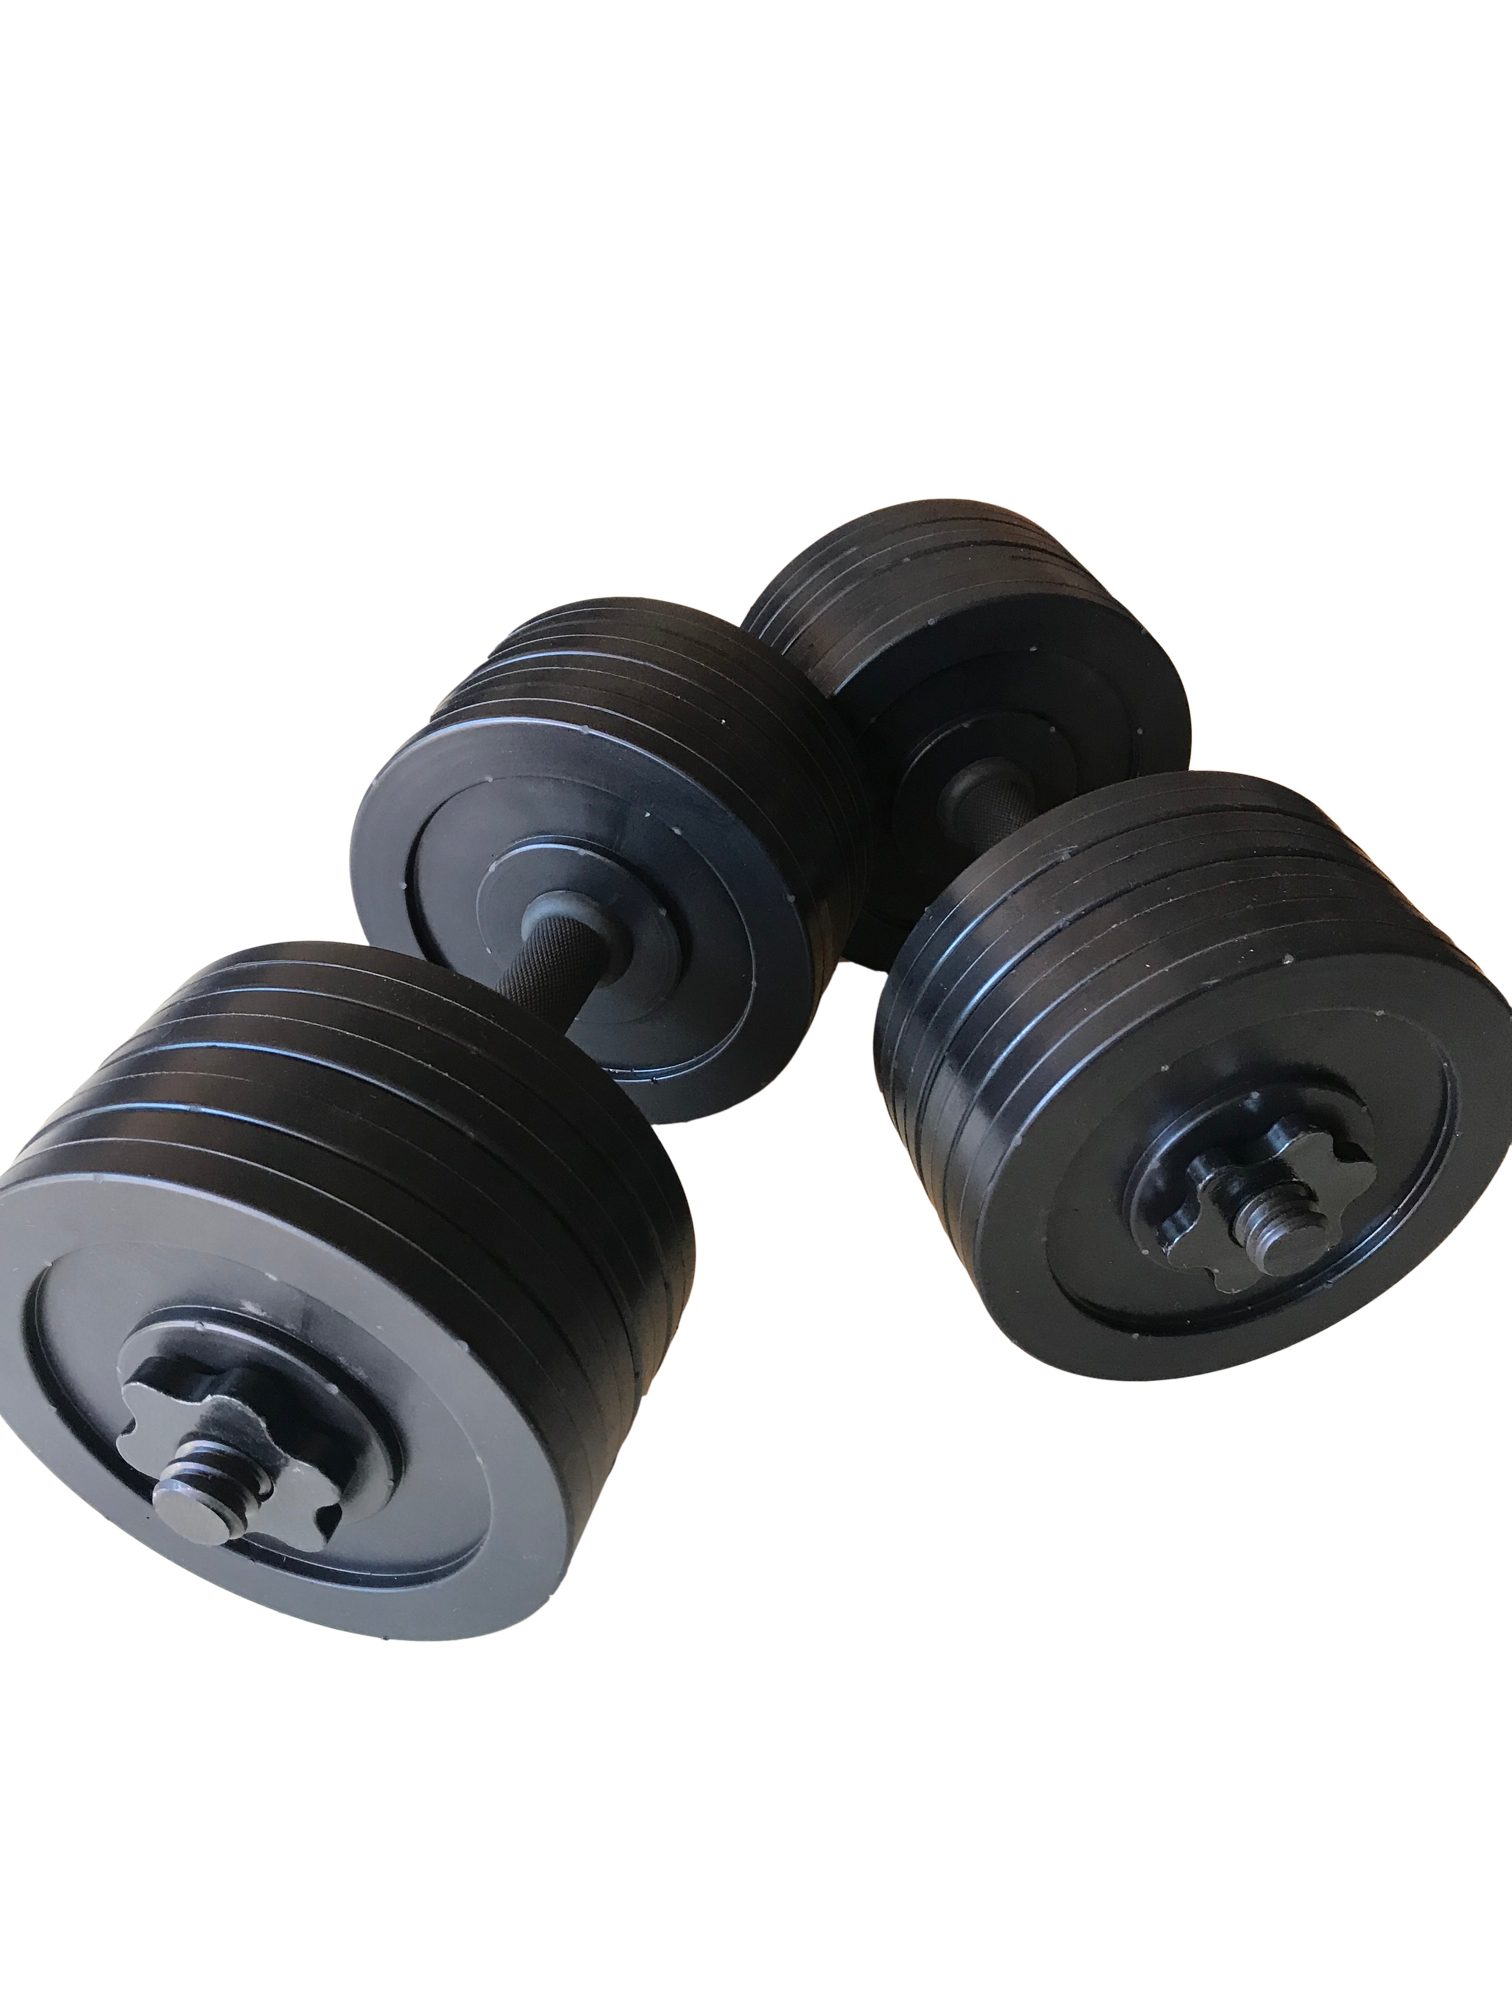 fake dumbbell weights 14 black dumbbell weight props truly one